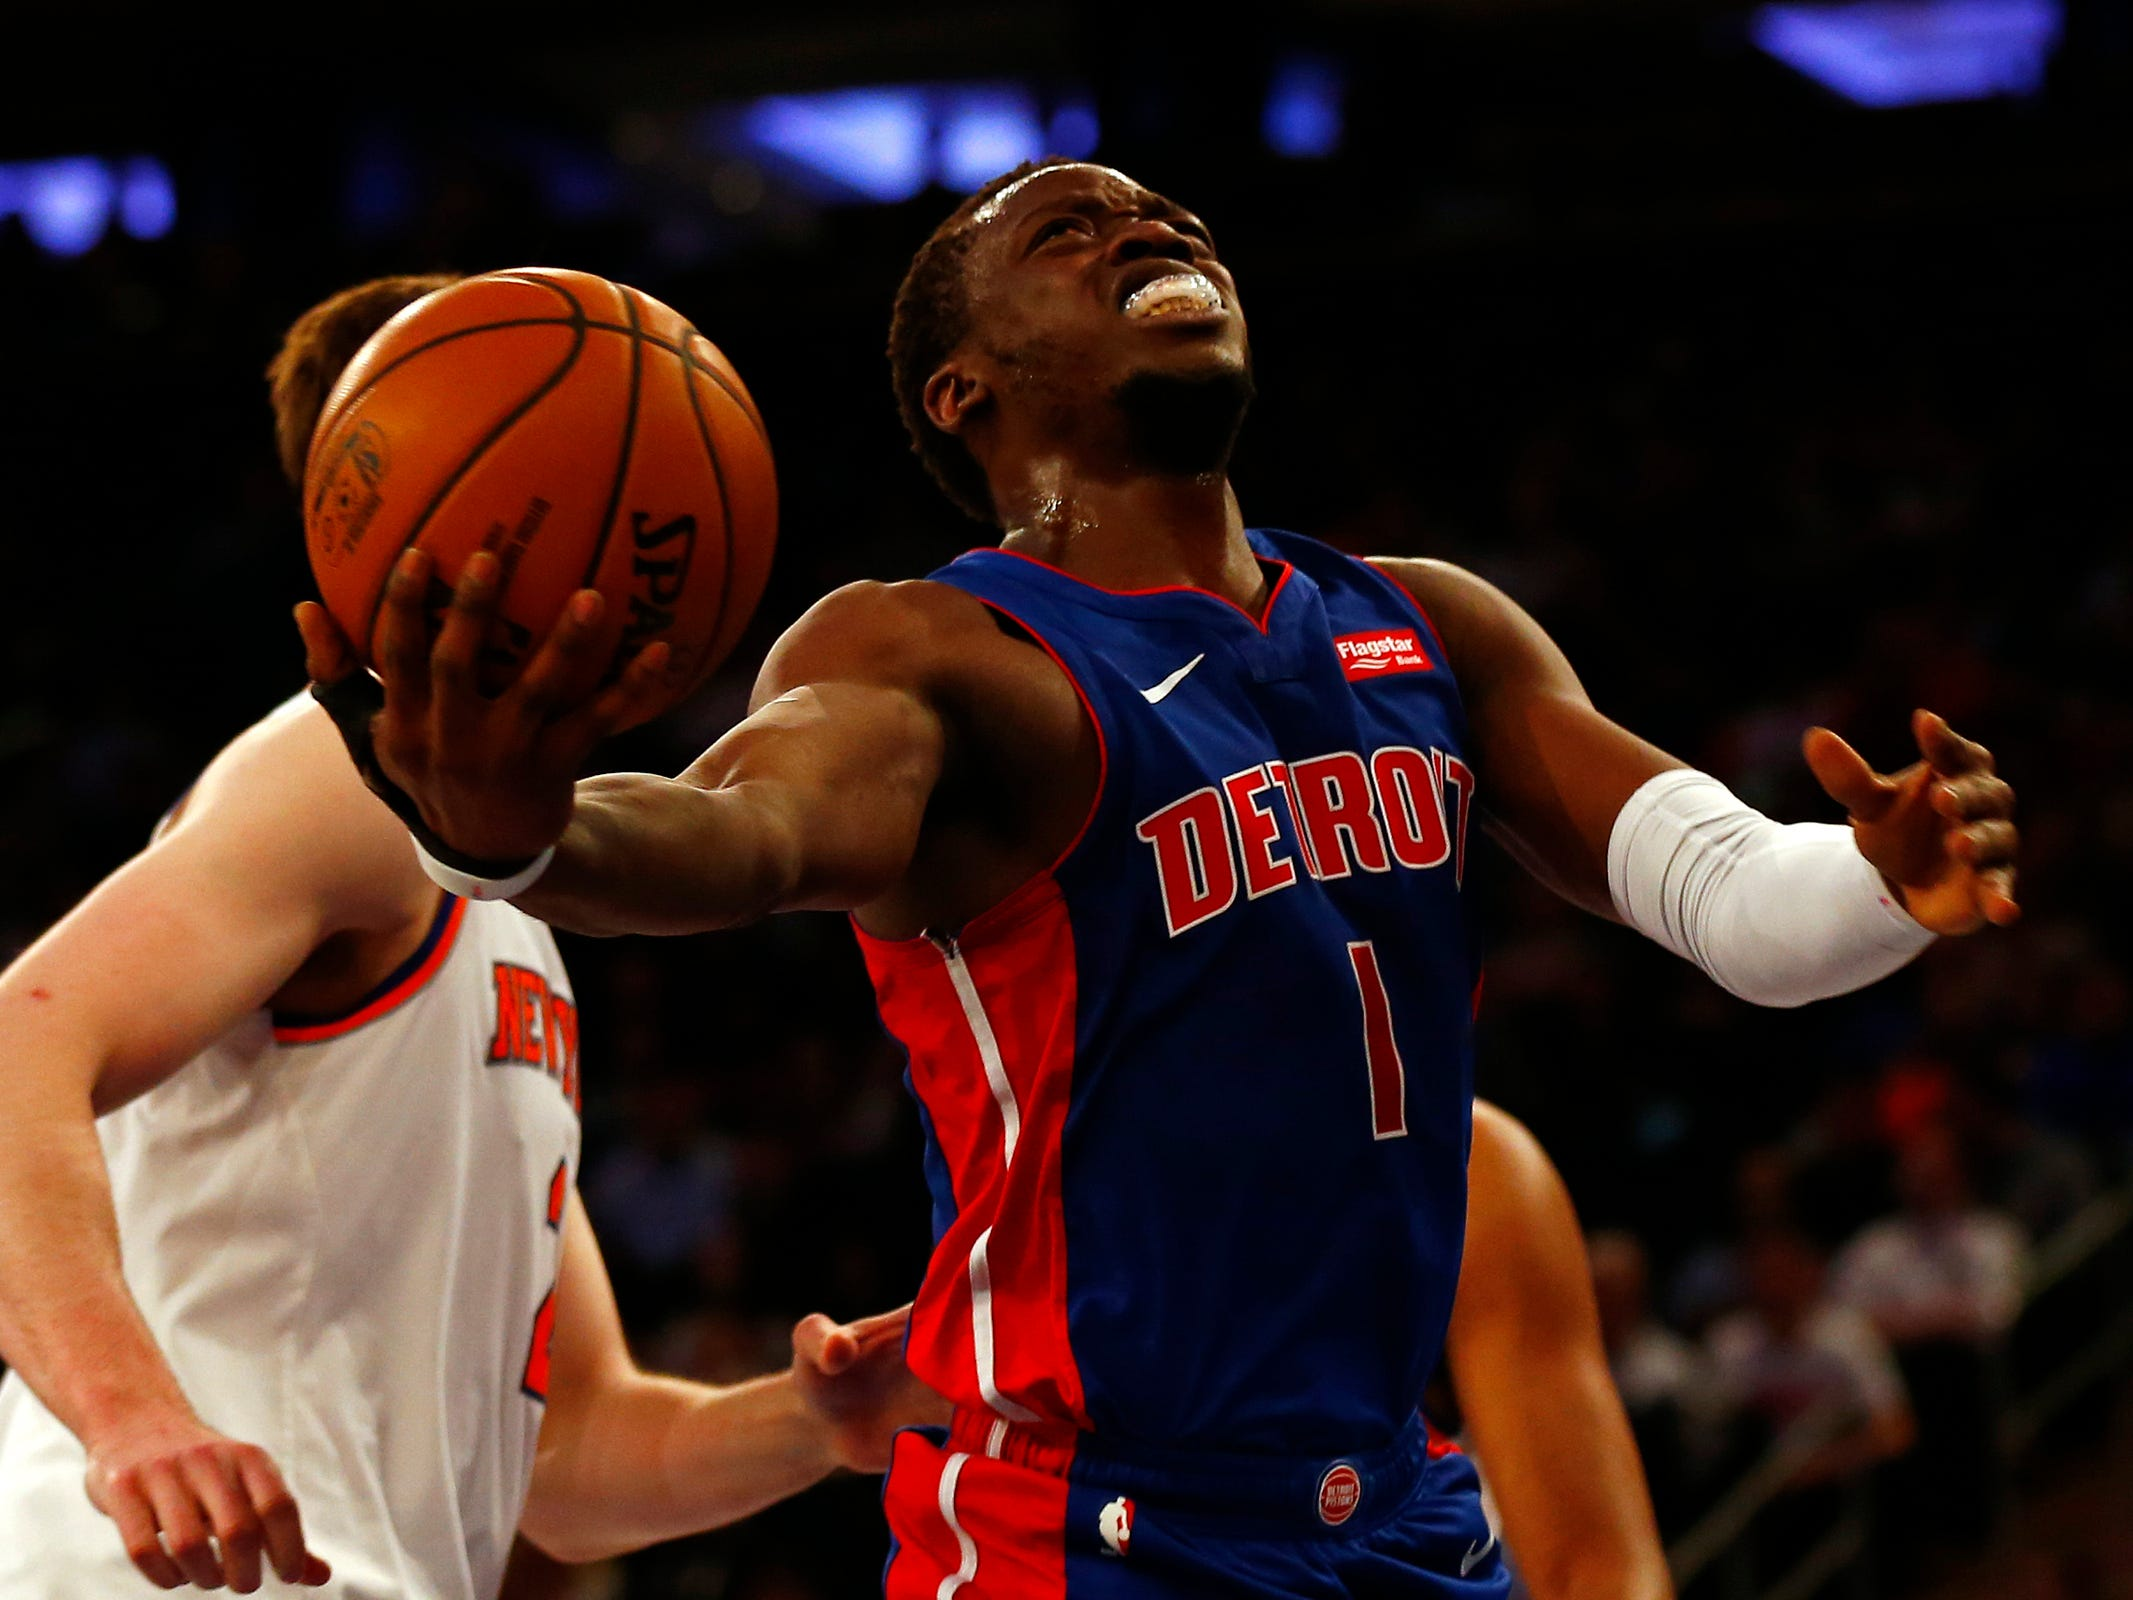 Detroit Pistons guard Reggie Jackson (1) drives to the basket against the New York Knicks during the first half at Madison Square Garden on Wednesday, April 10, 2019.